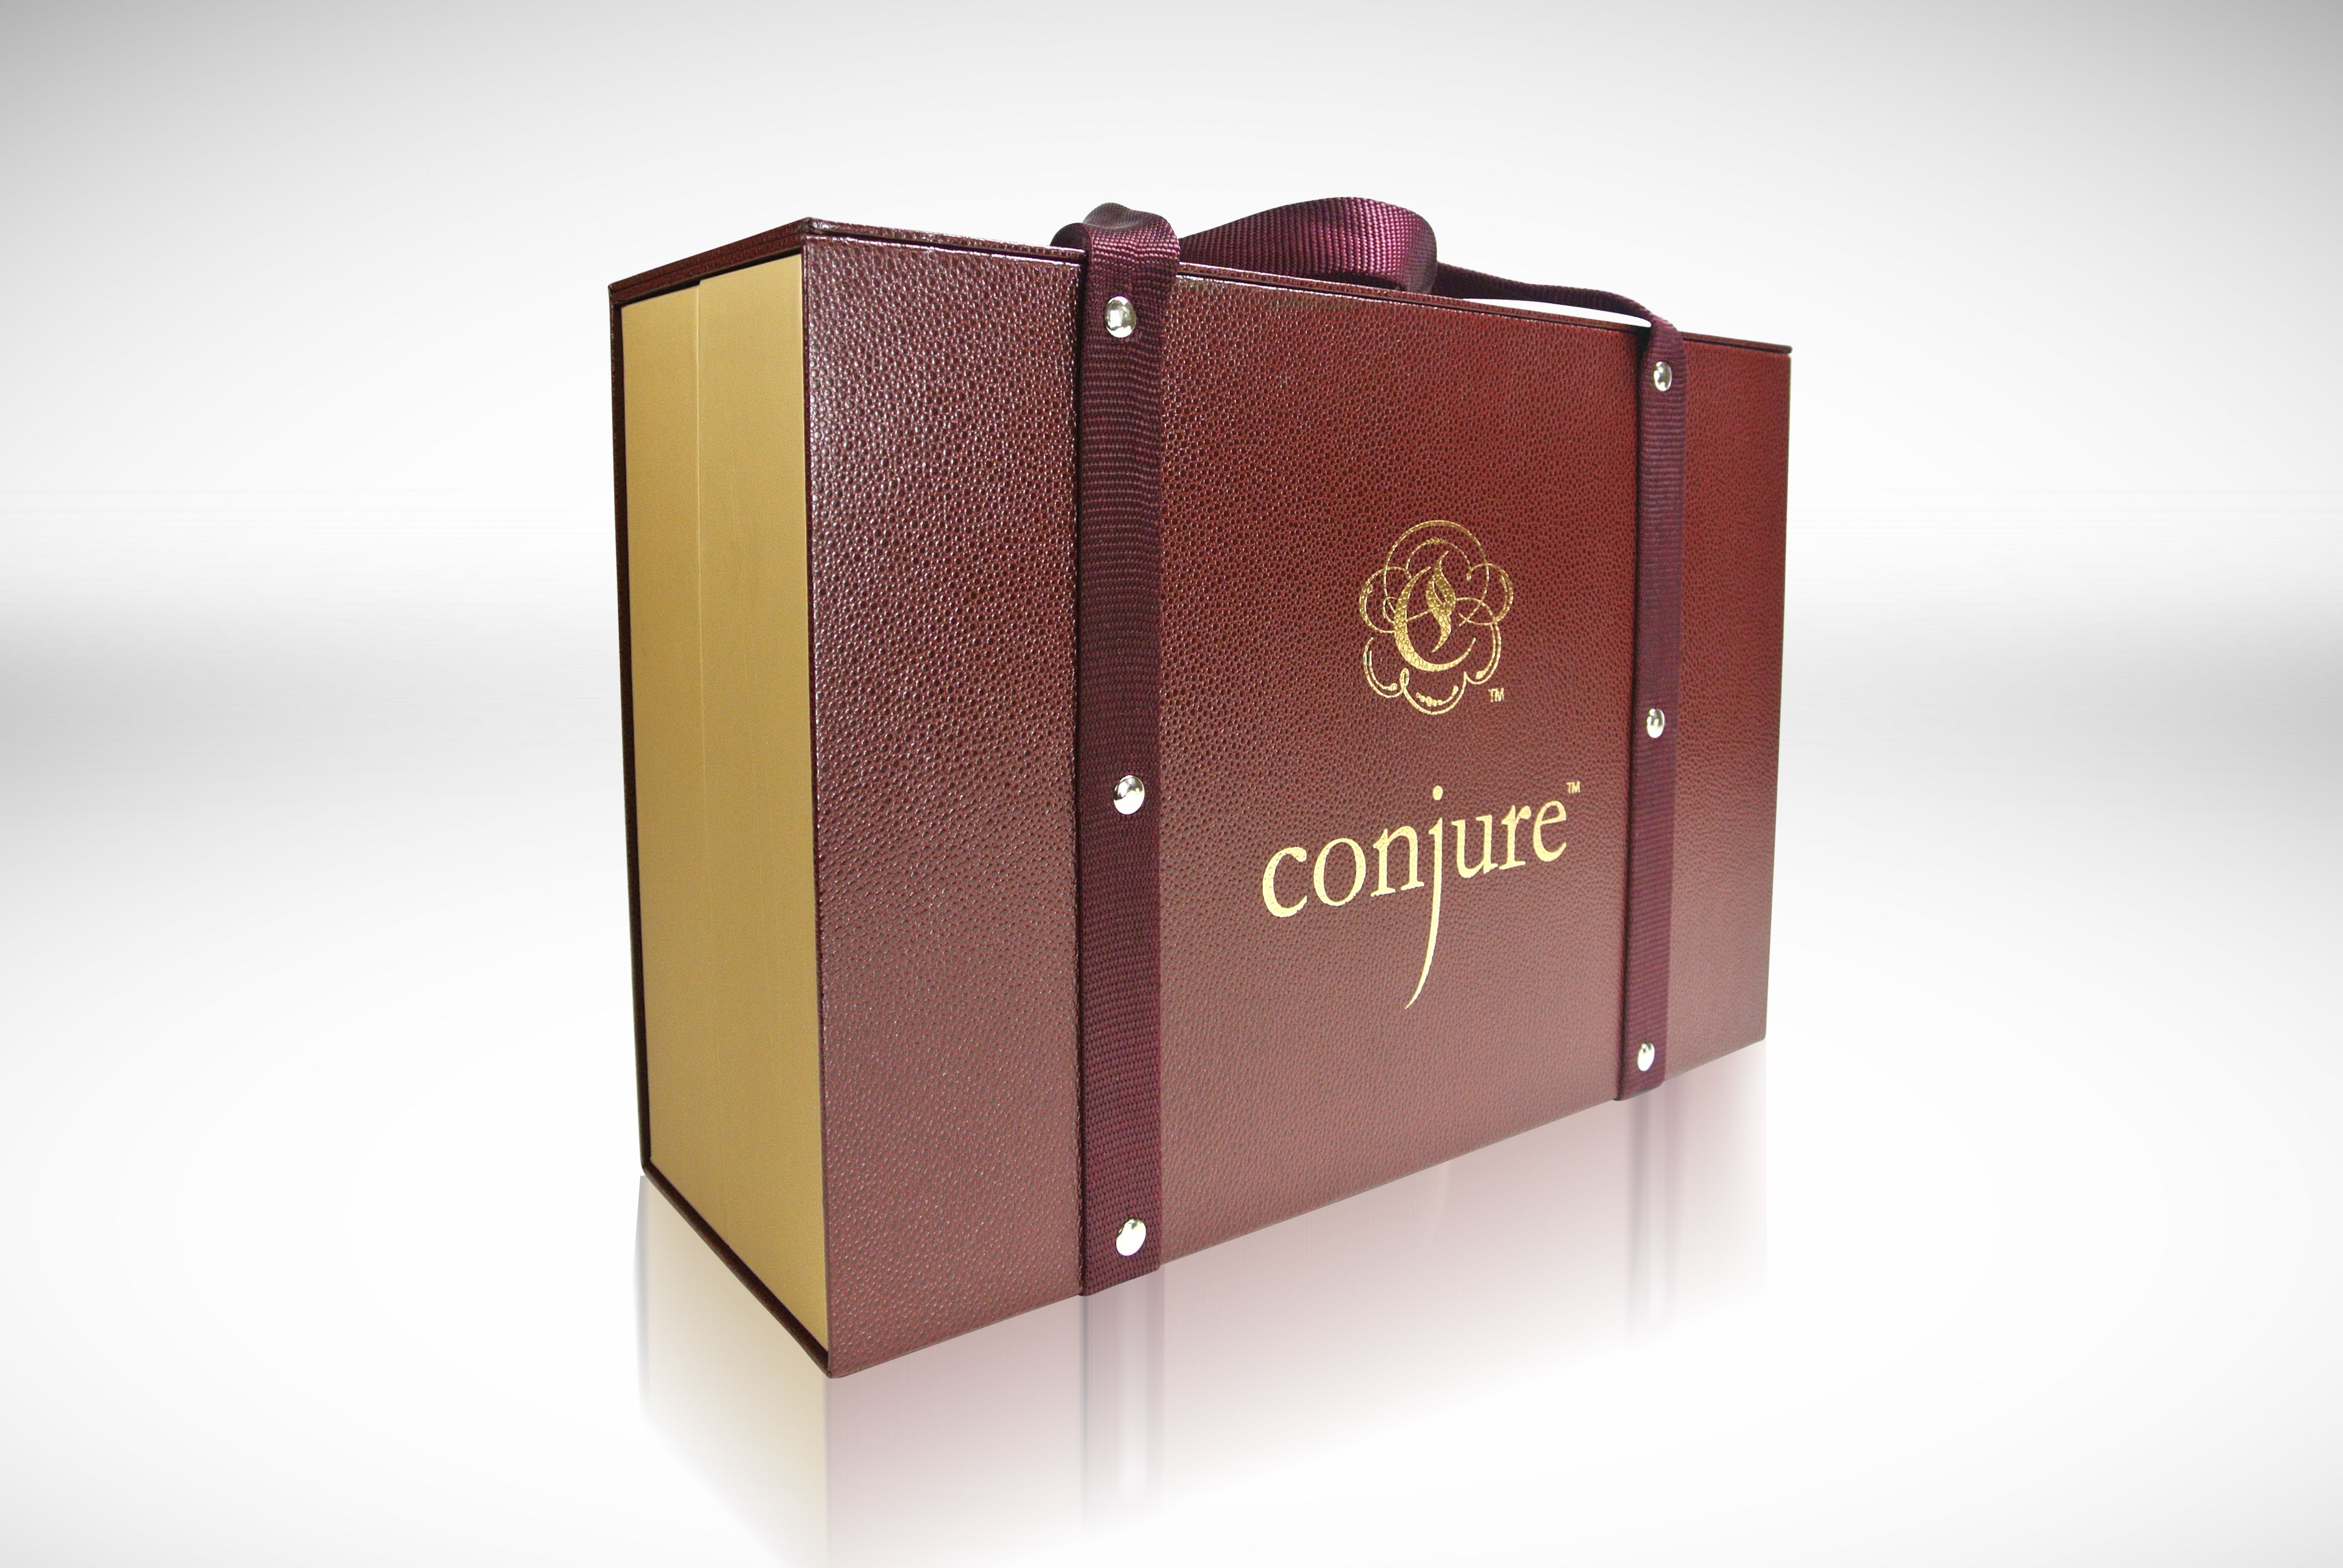 The Conjure Sales Kit Is One Of A Kind Burgundy Material And Gold Foil Demand Attention Inside Custom Foam Inserts And Matte The Conjuring Things To Sell Box